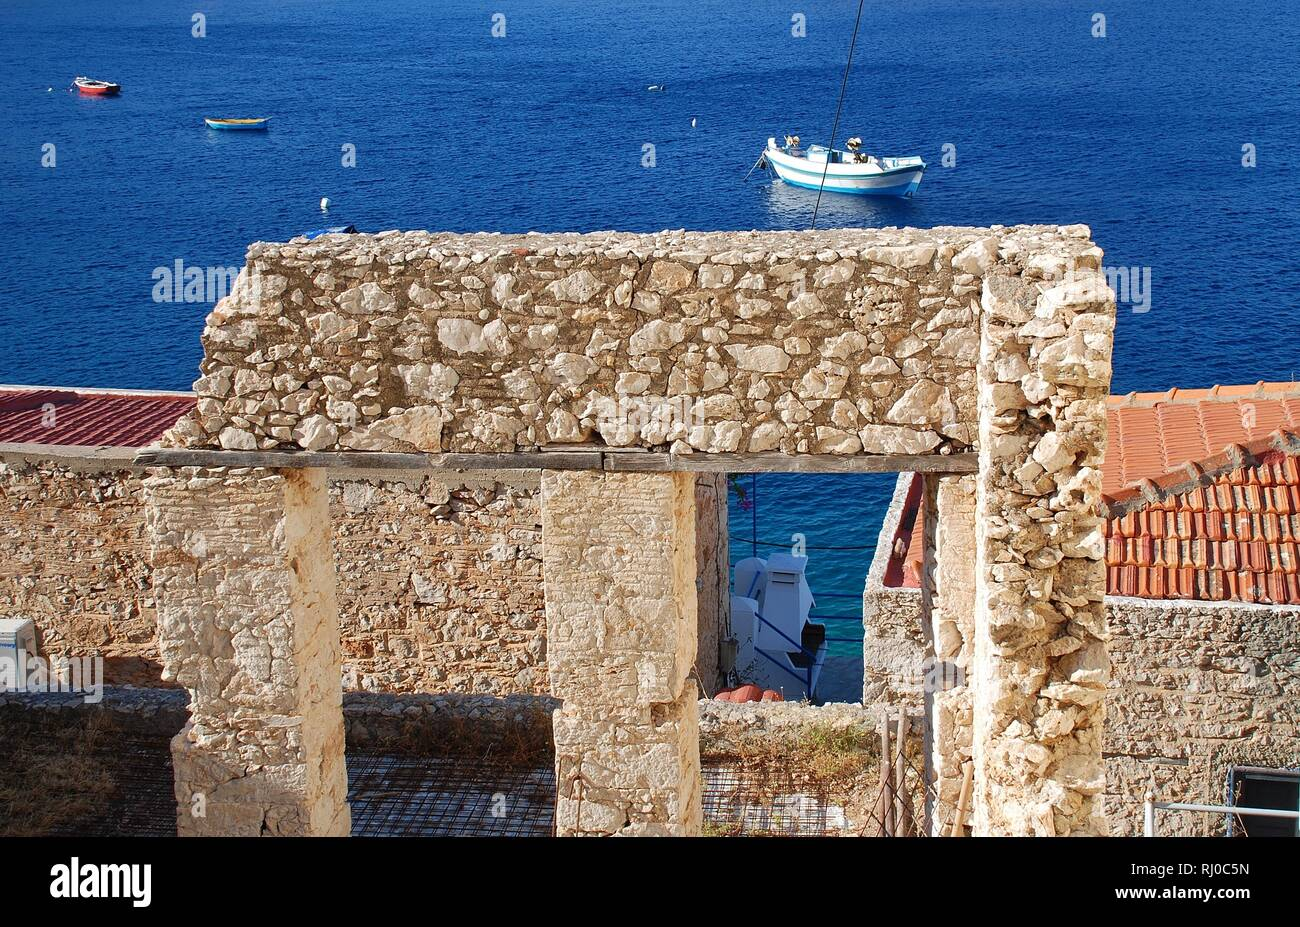 A derelict old stone building by the harbour at Emborio on the Greek island of Halki. - Stock Image